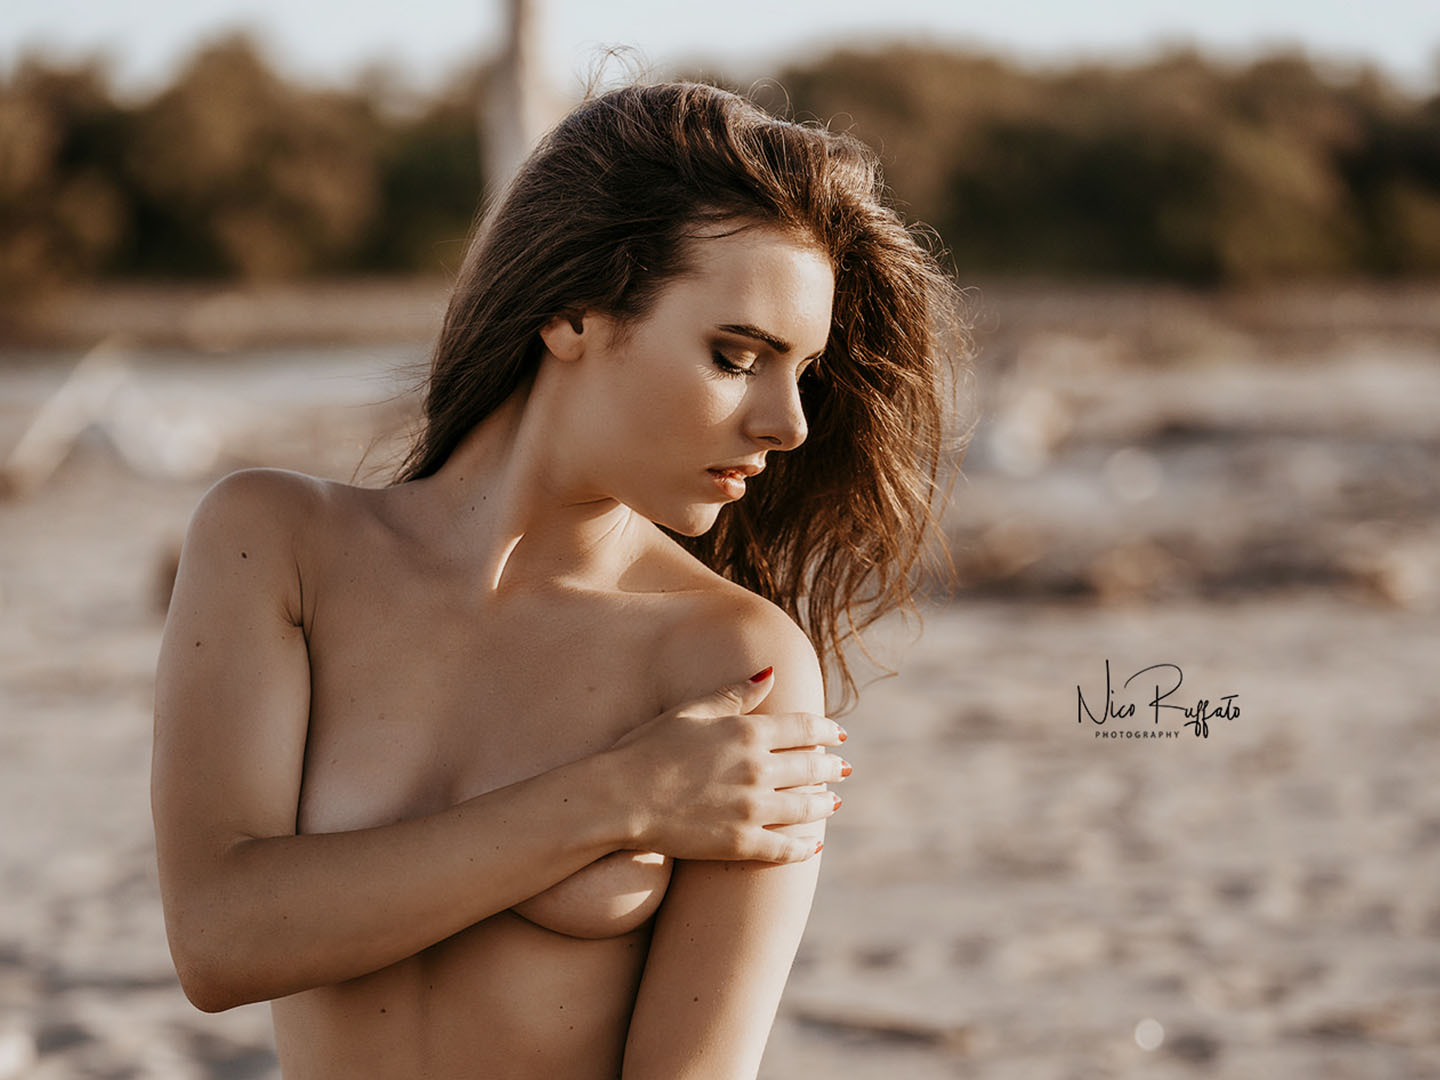 Categories: Boudoir & Nude, Glamour, Portrait; Photo: NICO RUFFATO; Model: LUCREZIA GARDIN; Location: Spiaggia di Porto Caleri, Rosolina, RO, Italia